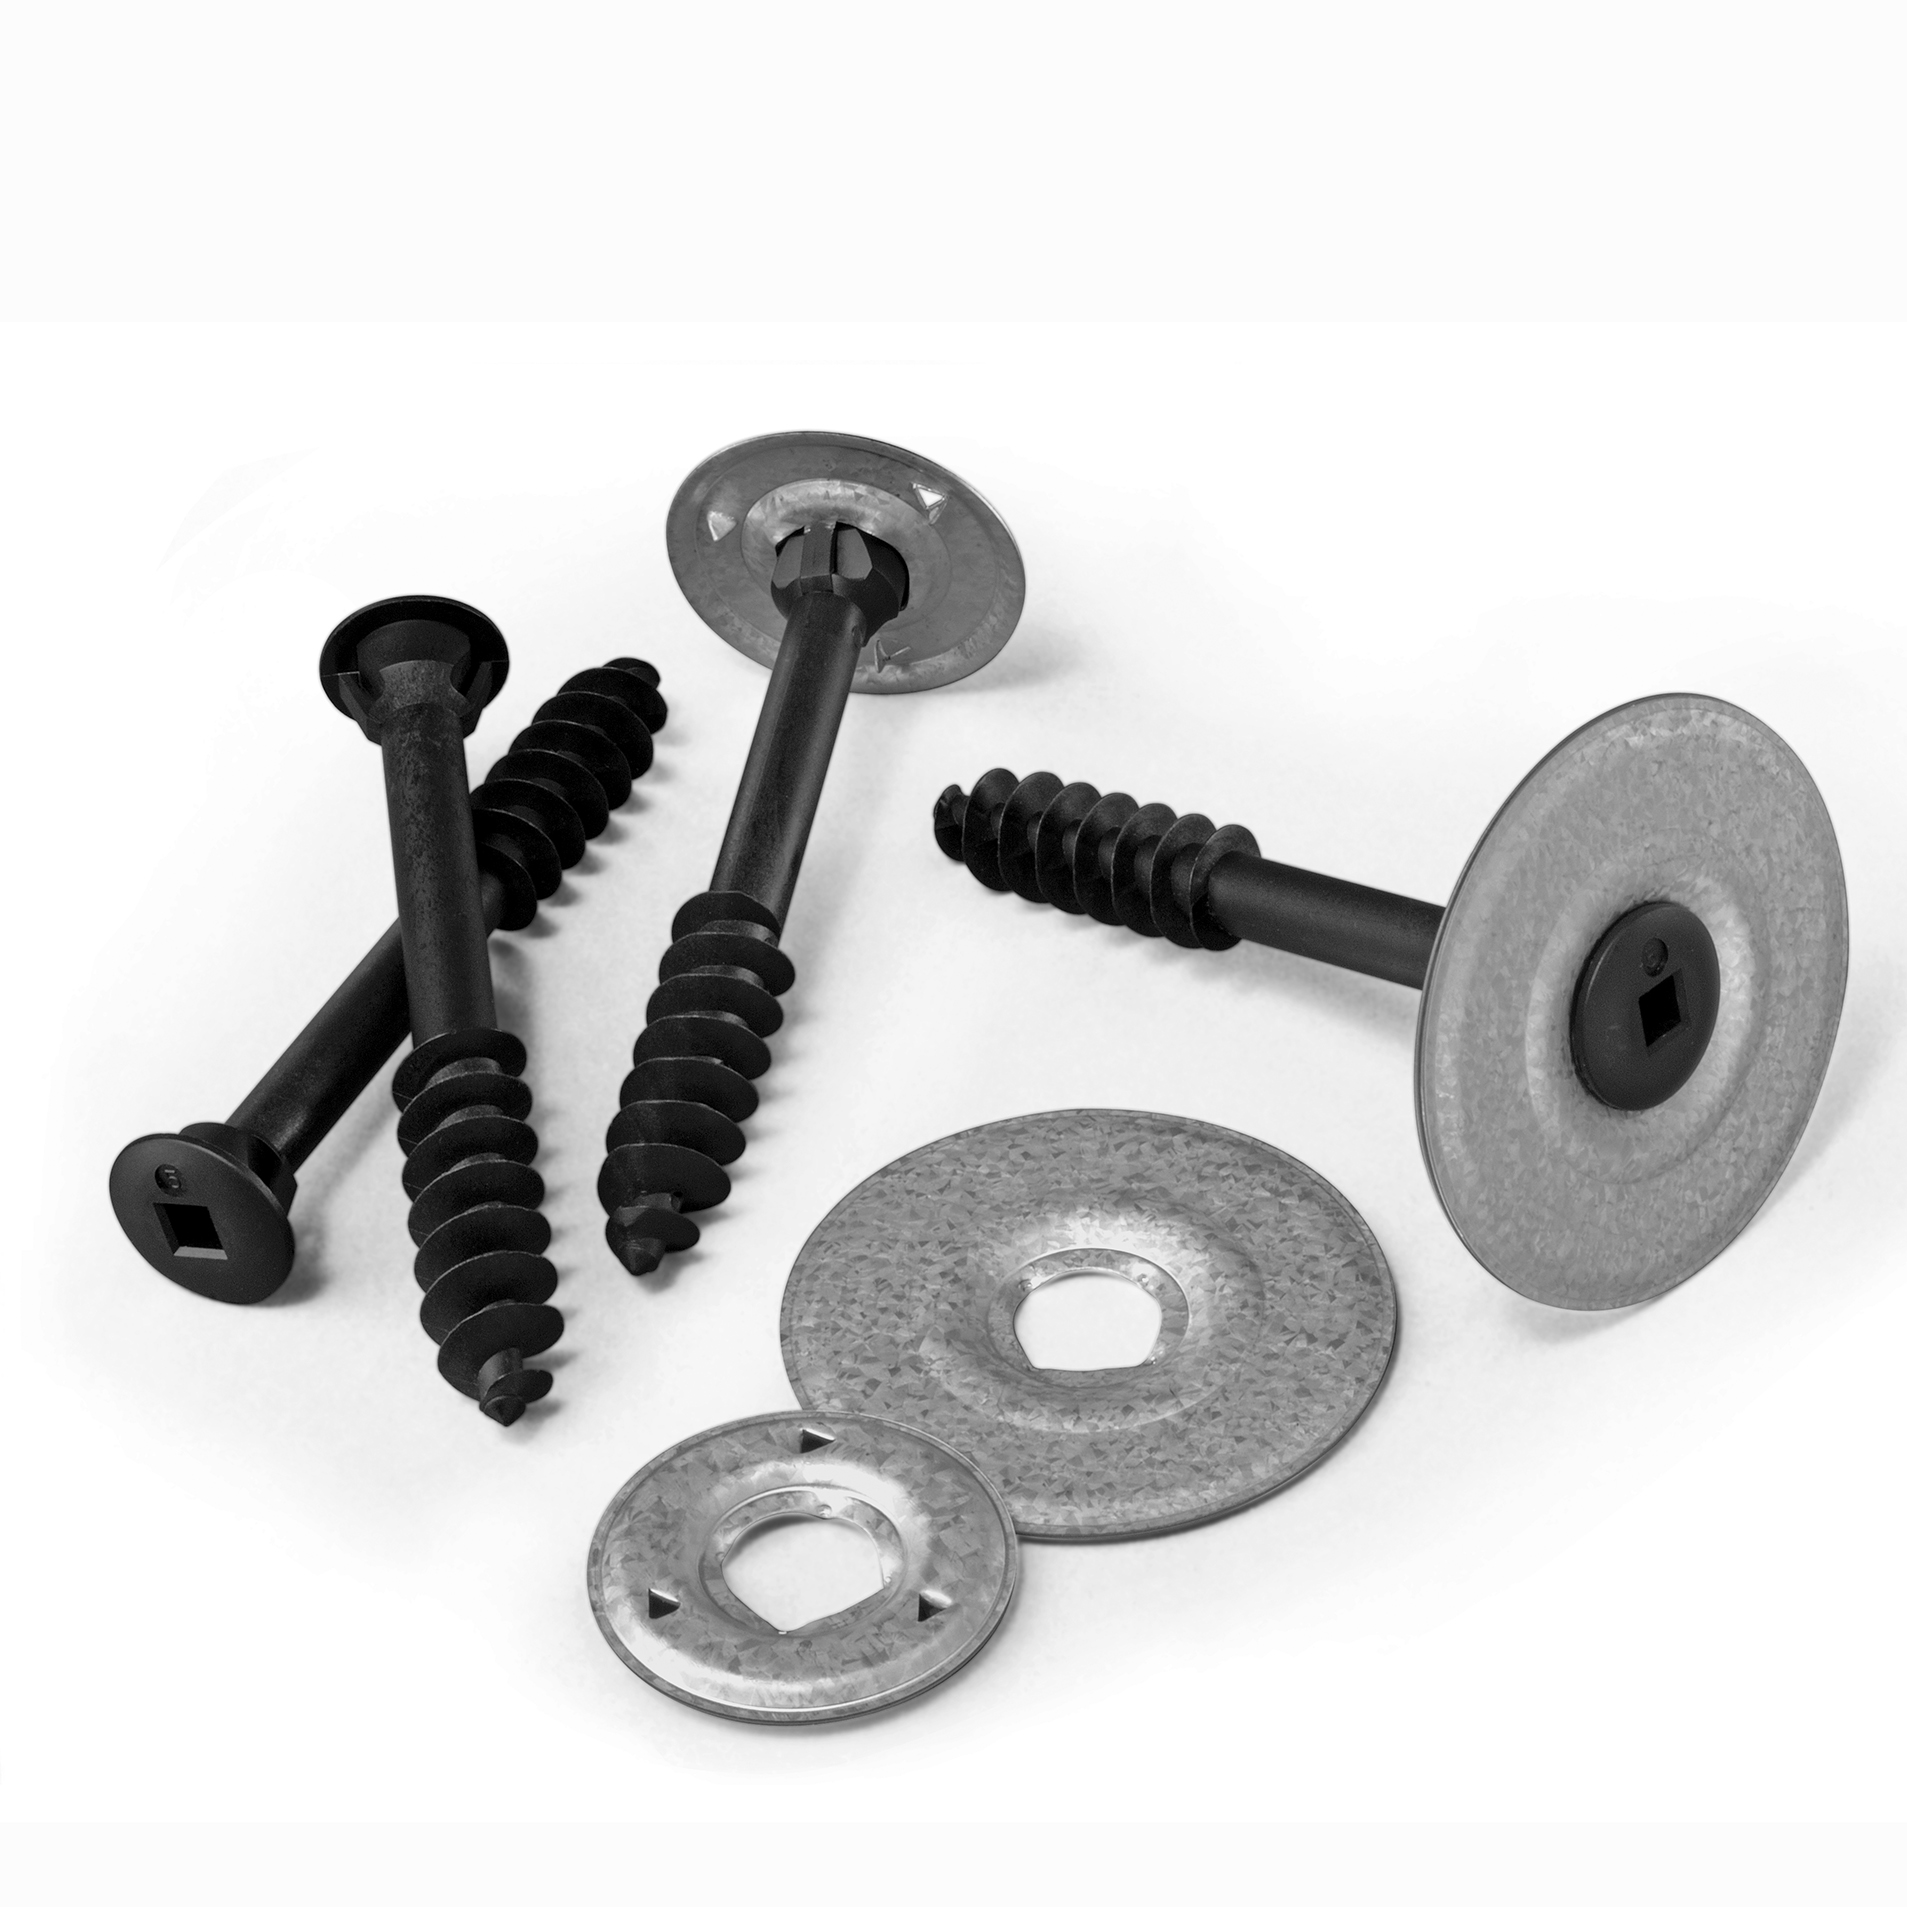 Image of Polymer GypTec Screw Group